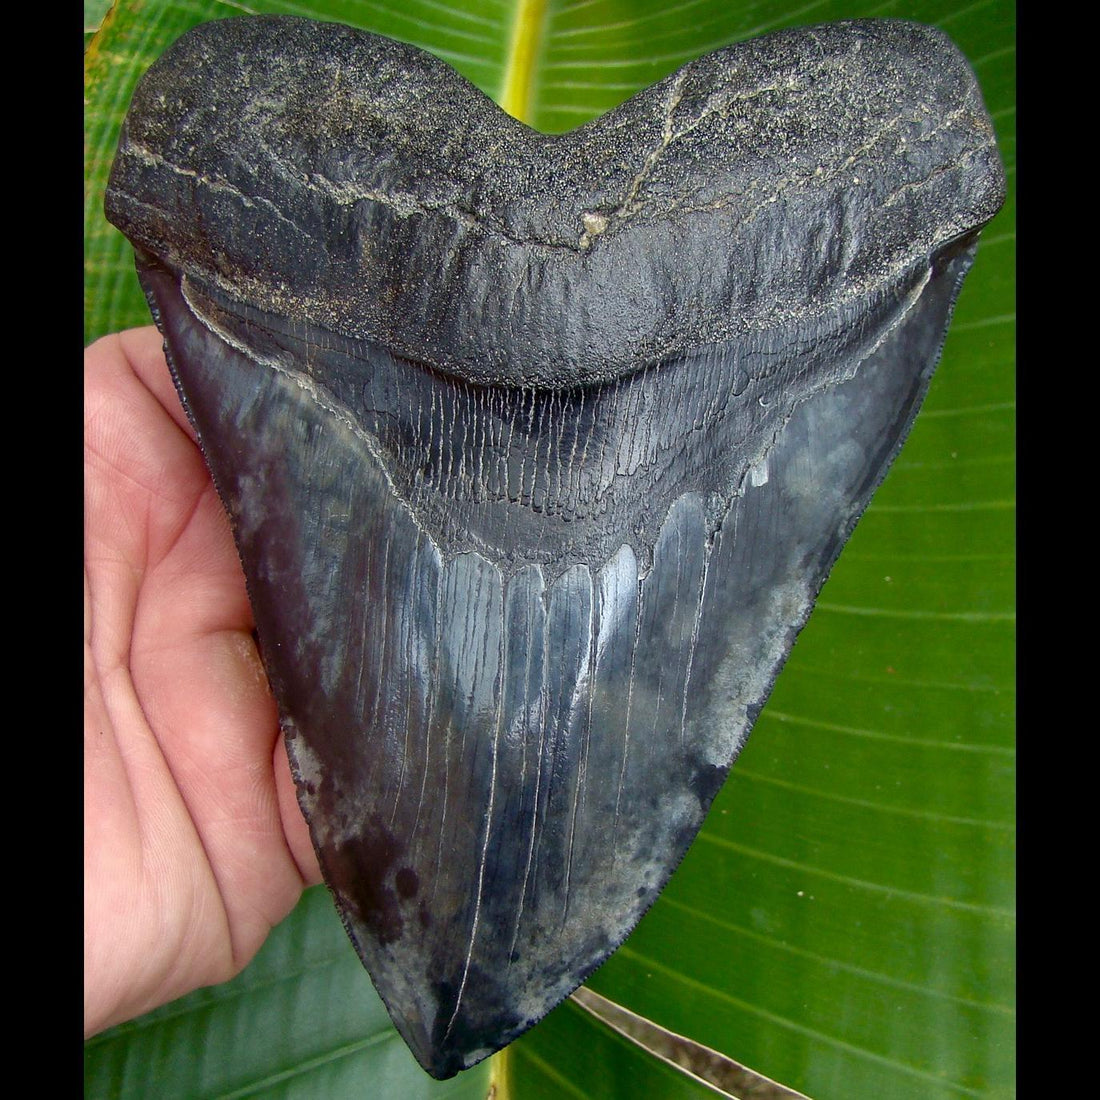 Megalodon Tooth 5 & 13/16 in. South Carolina Megalodon Shark Tooth